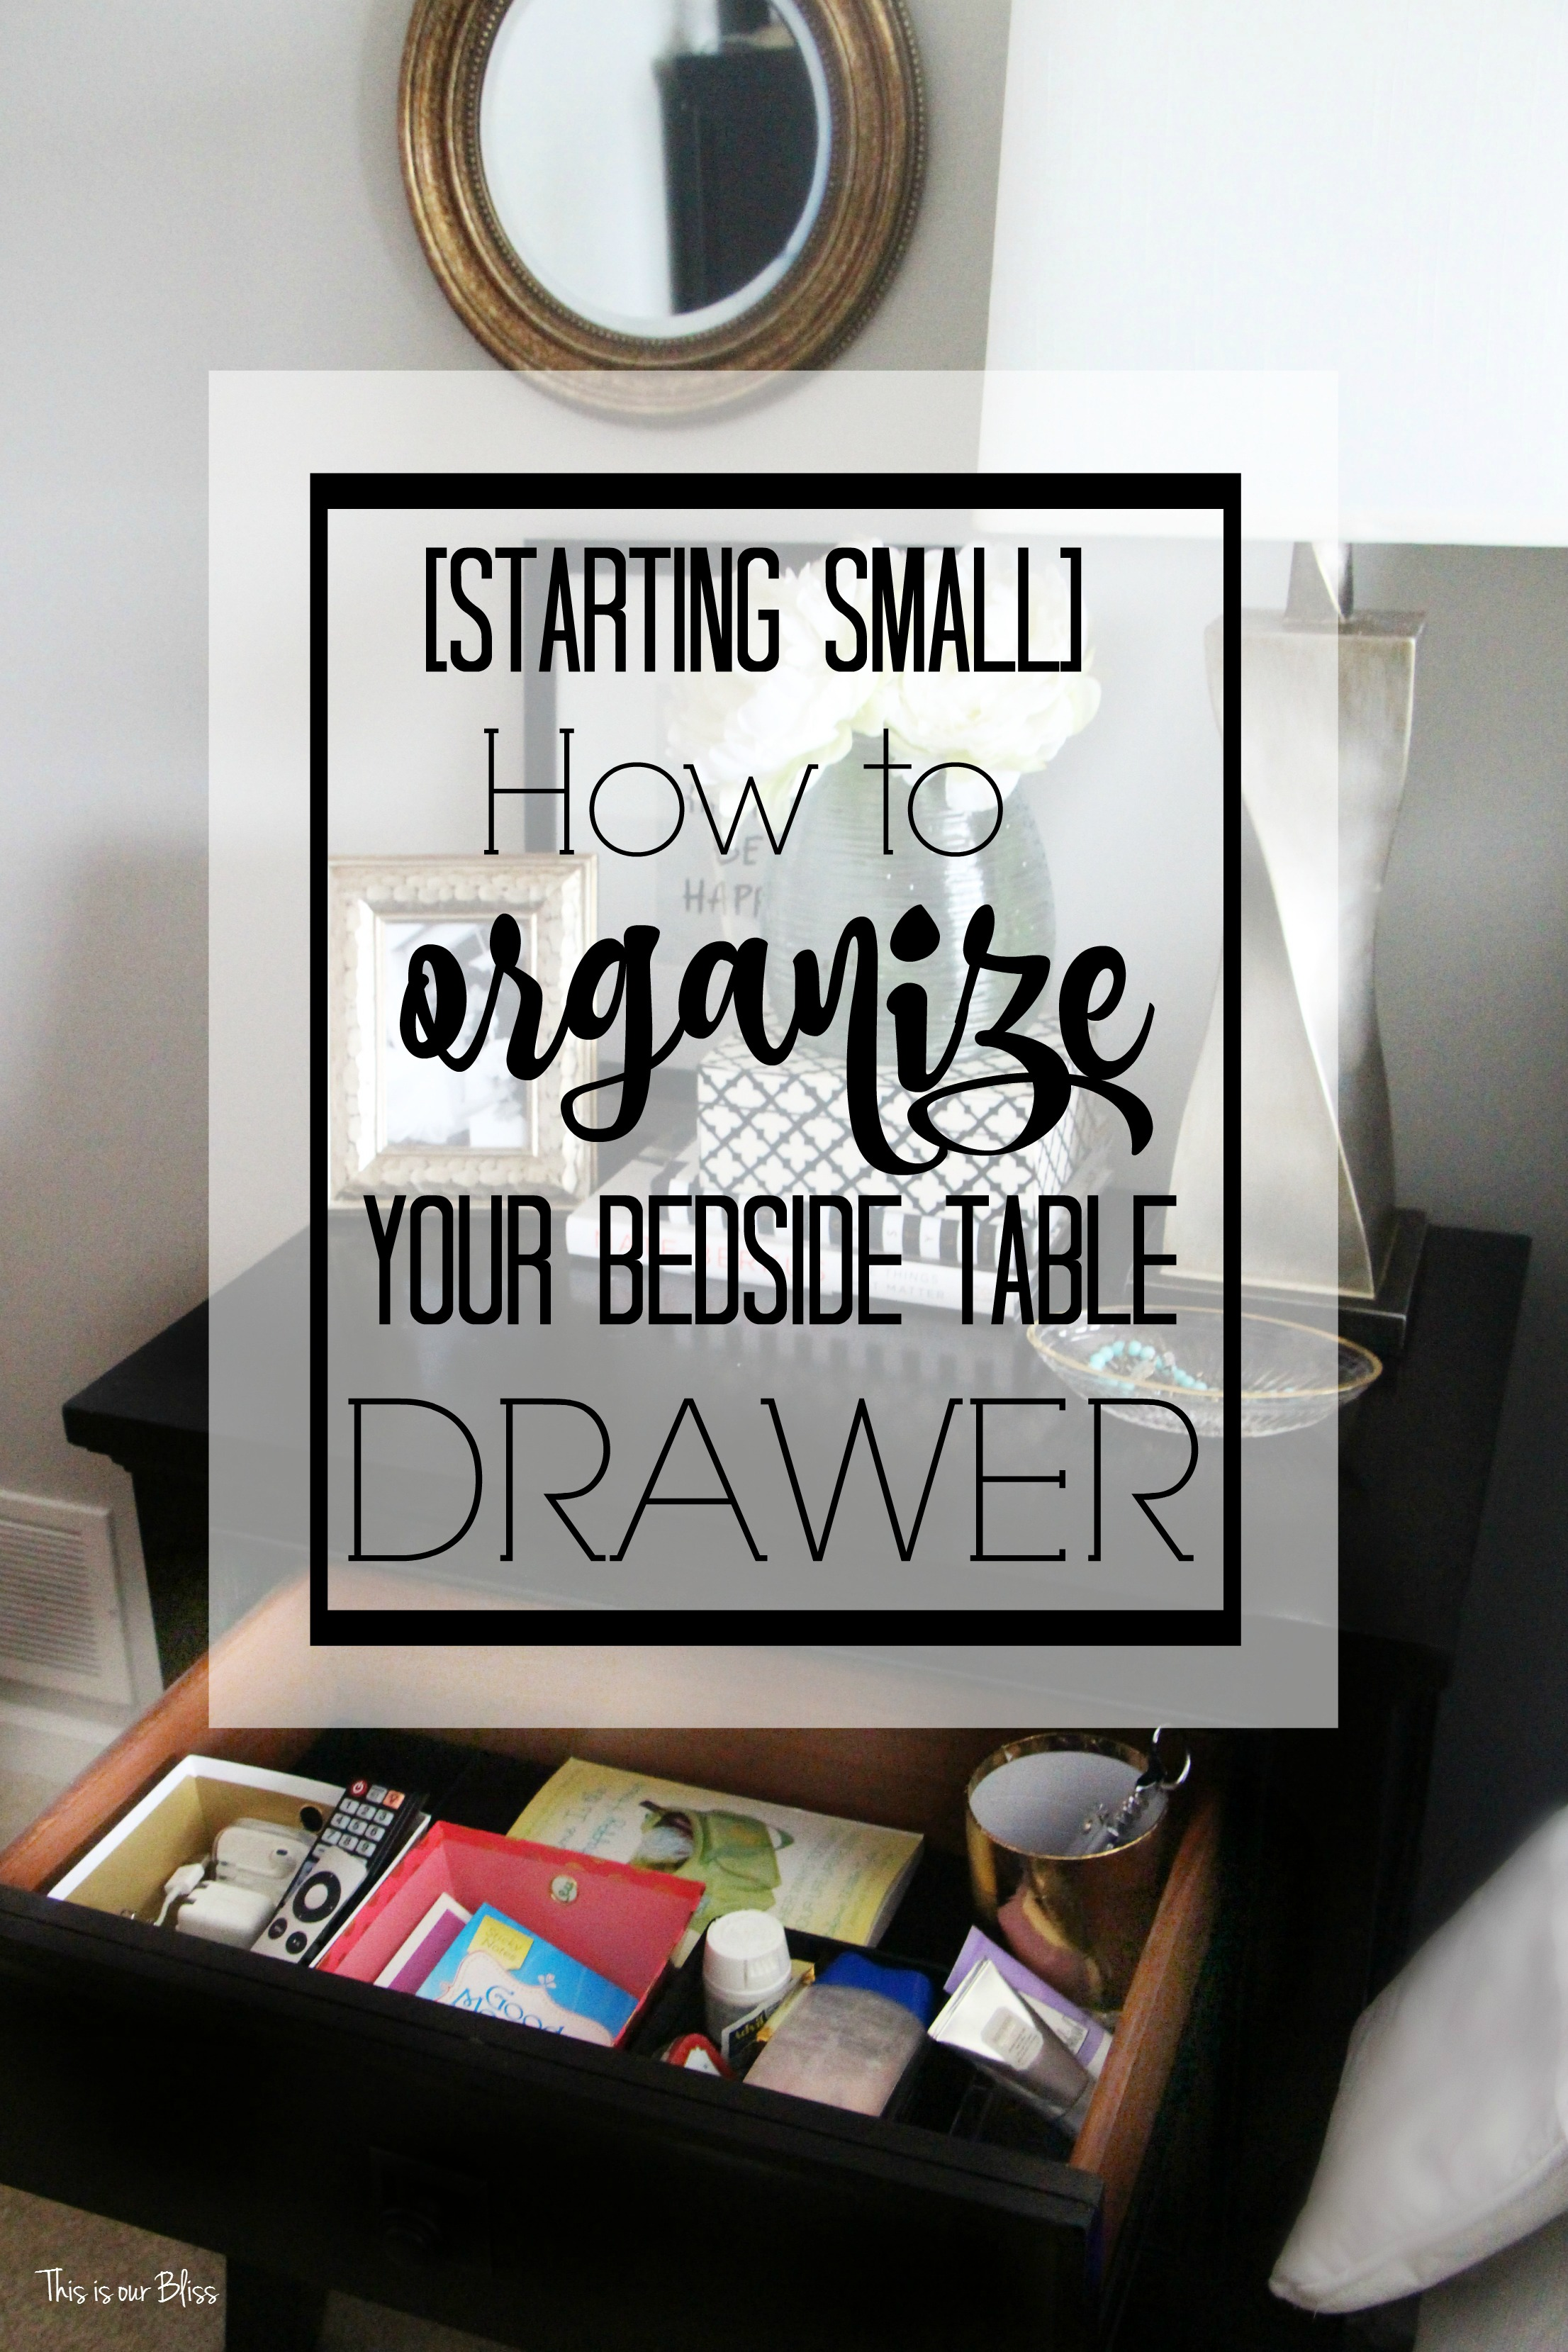 starting small How to organize your bedside table drawer - nightstand organization This is our Bliss www.thisisourbliss.com